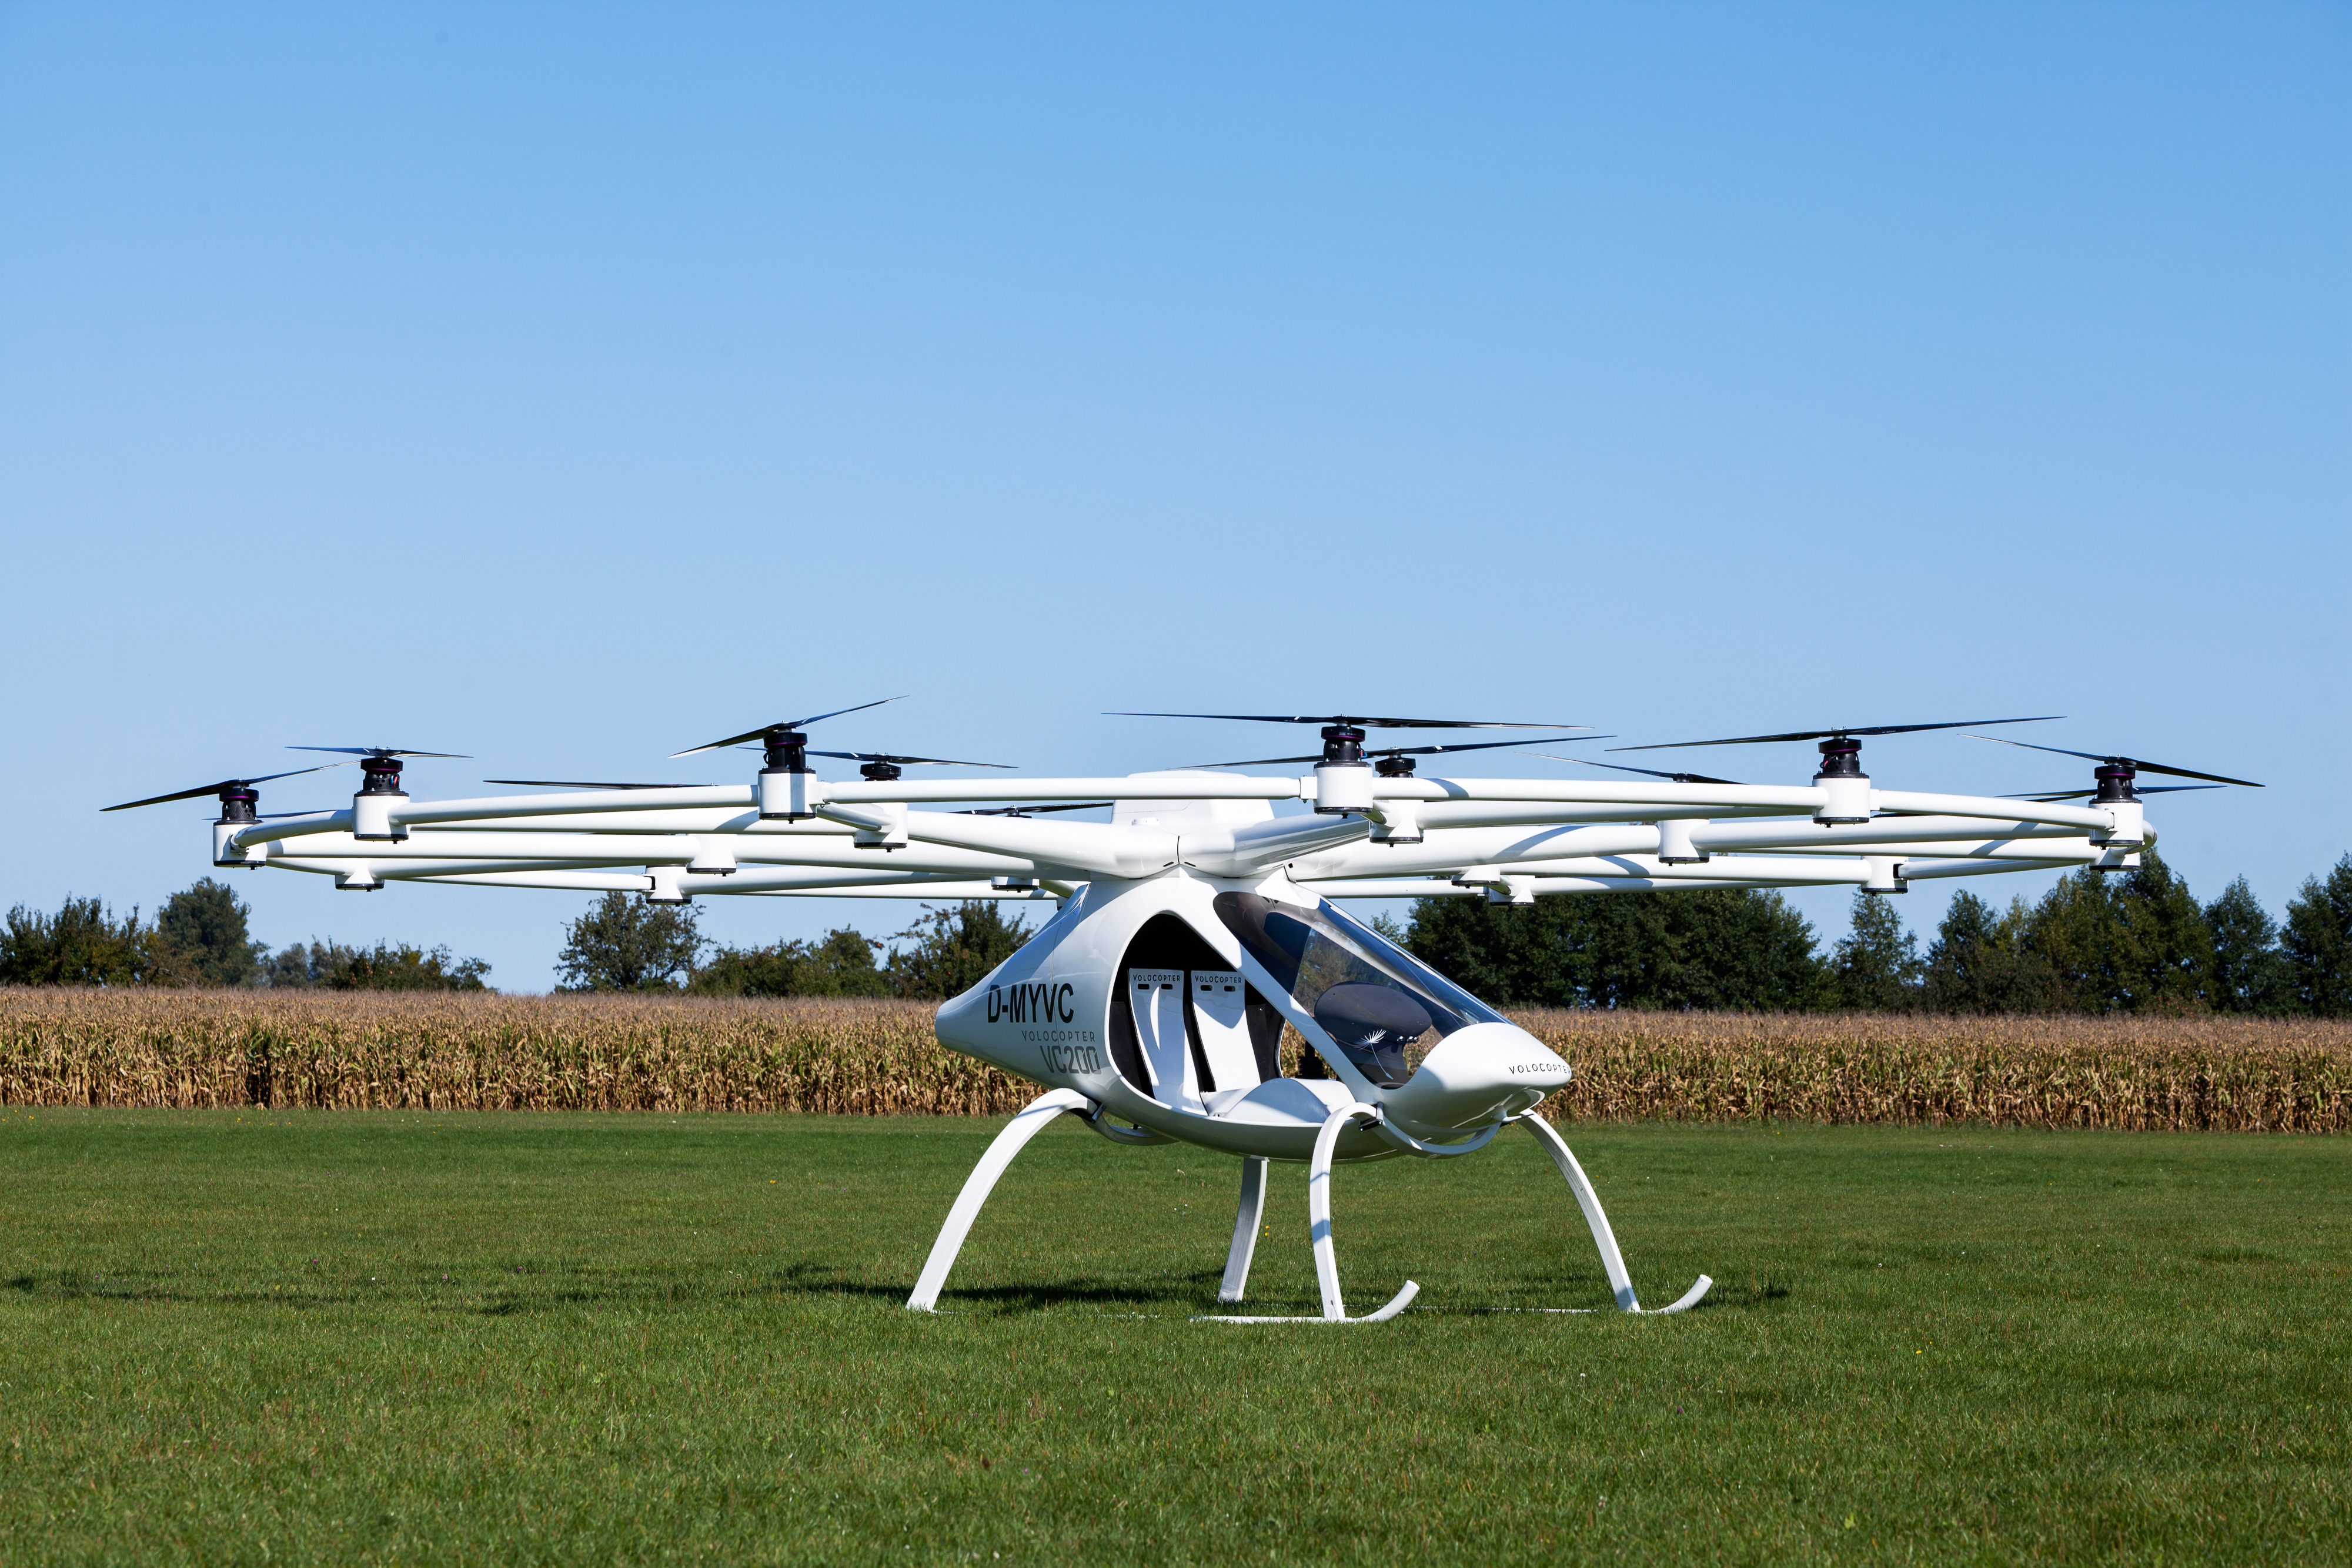 Volocopter VC200 Manned Drone